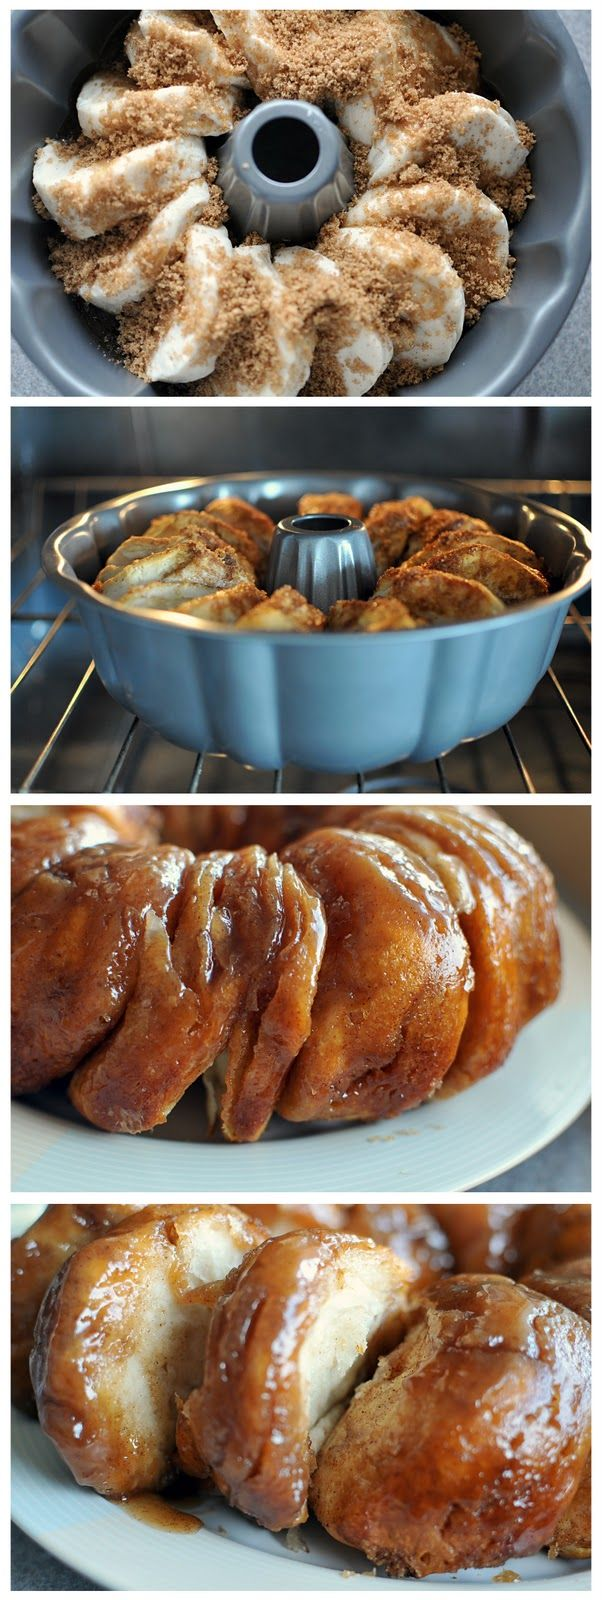 Easy sticky bunsMonkeys Breads, Monkey Bread, Breakfast Rings, Biscuits Cinnamon Rolls, Breakfast Idea, Christmas Mornings, Sticky Buns, Buns Breakfast, Food Recipe